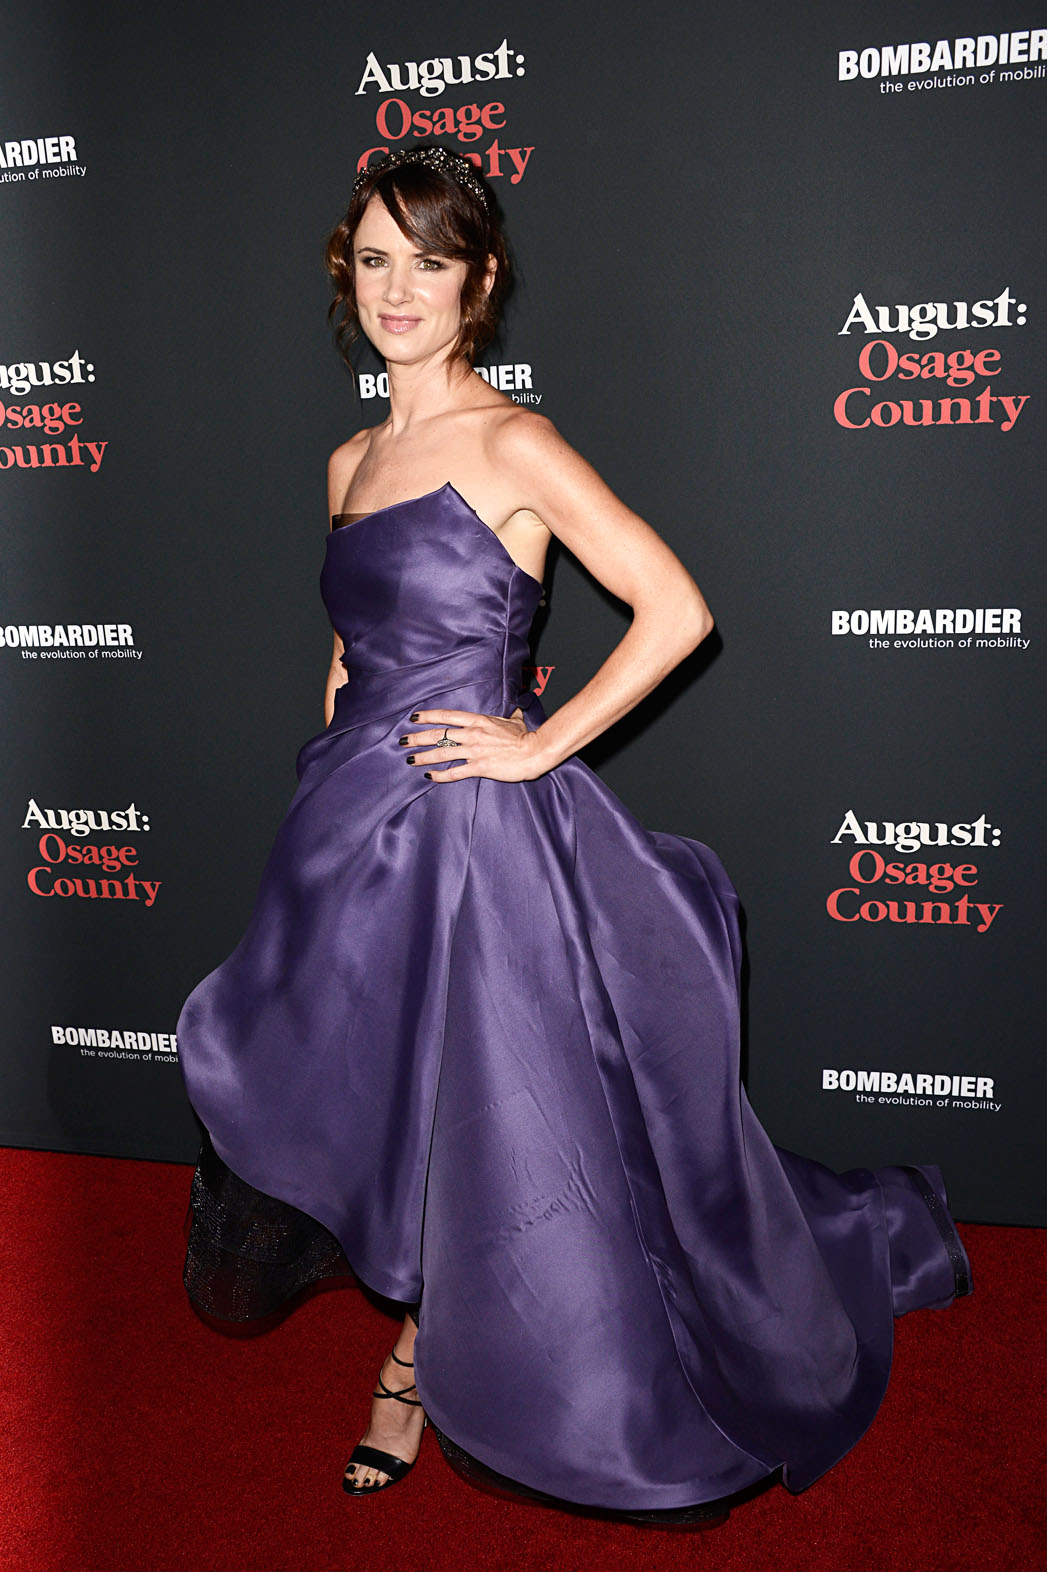 Juliette Lewis at the August: Osage County Premiere - P 2013